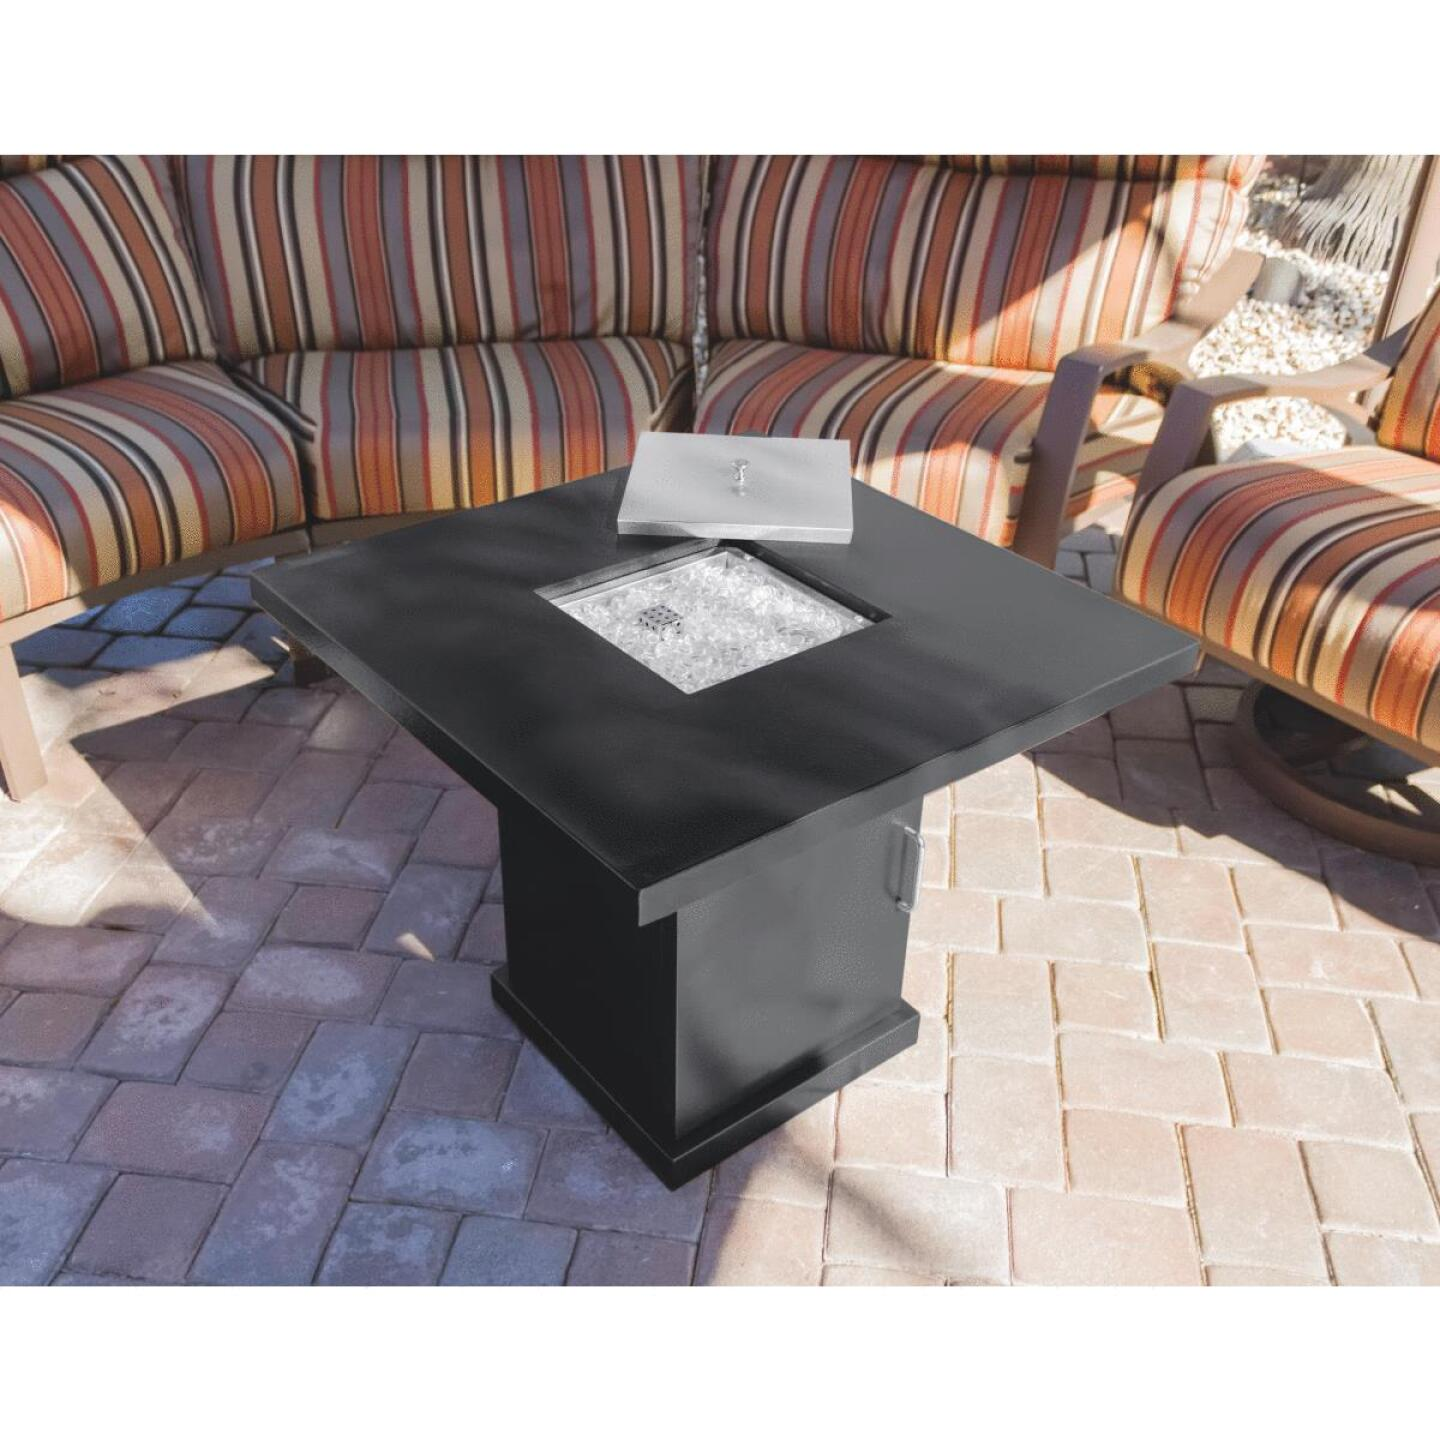 Hiland 30 In. Square Fire Pit Image 2